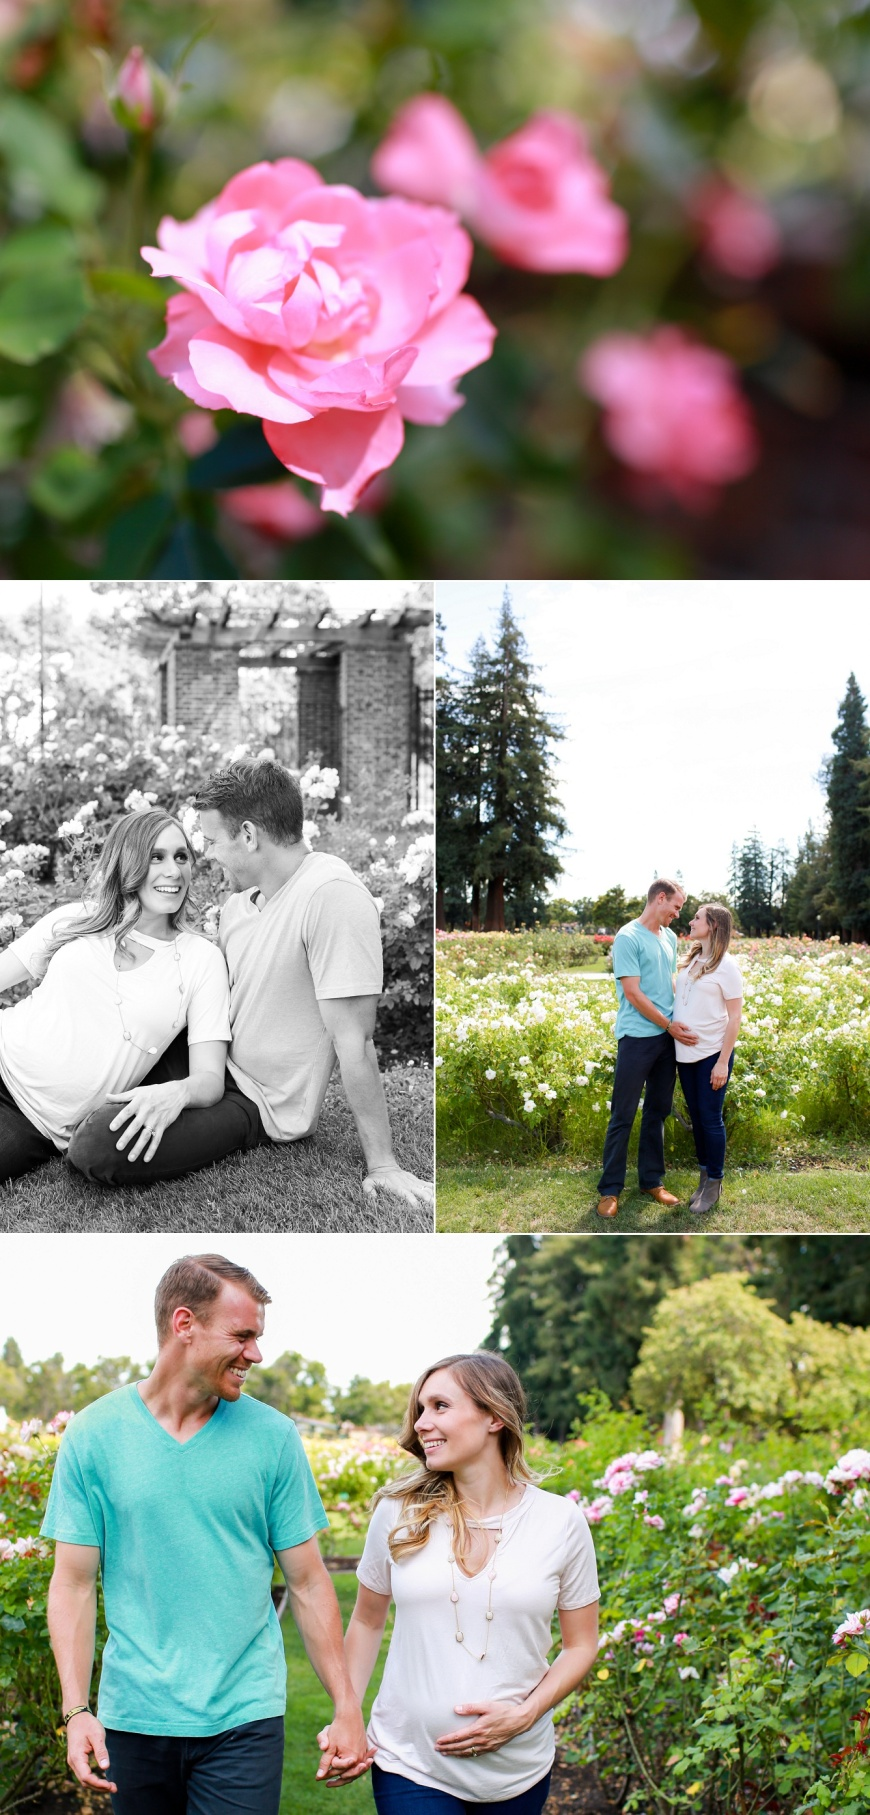 San-Jose-Rose-Garden-Maternity-Photographer_1001.jpg